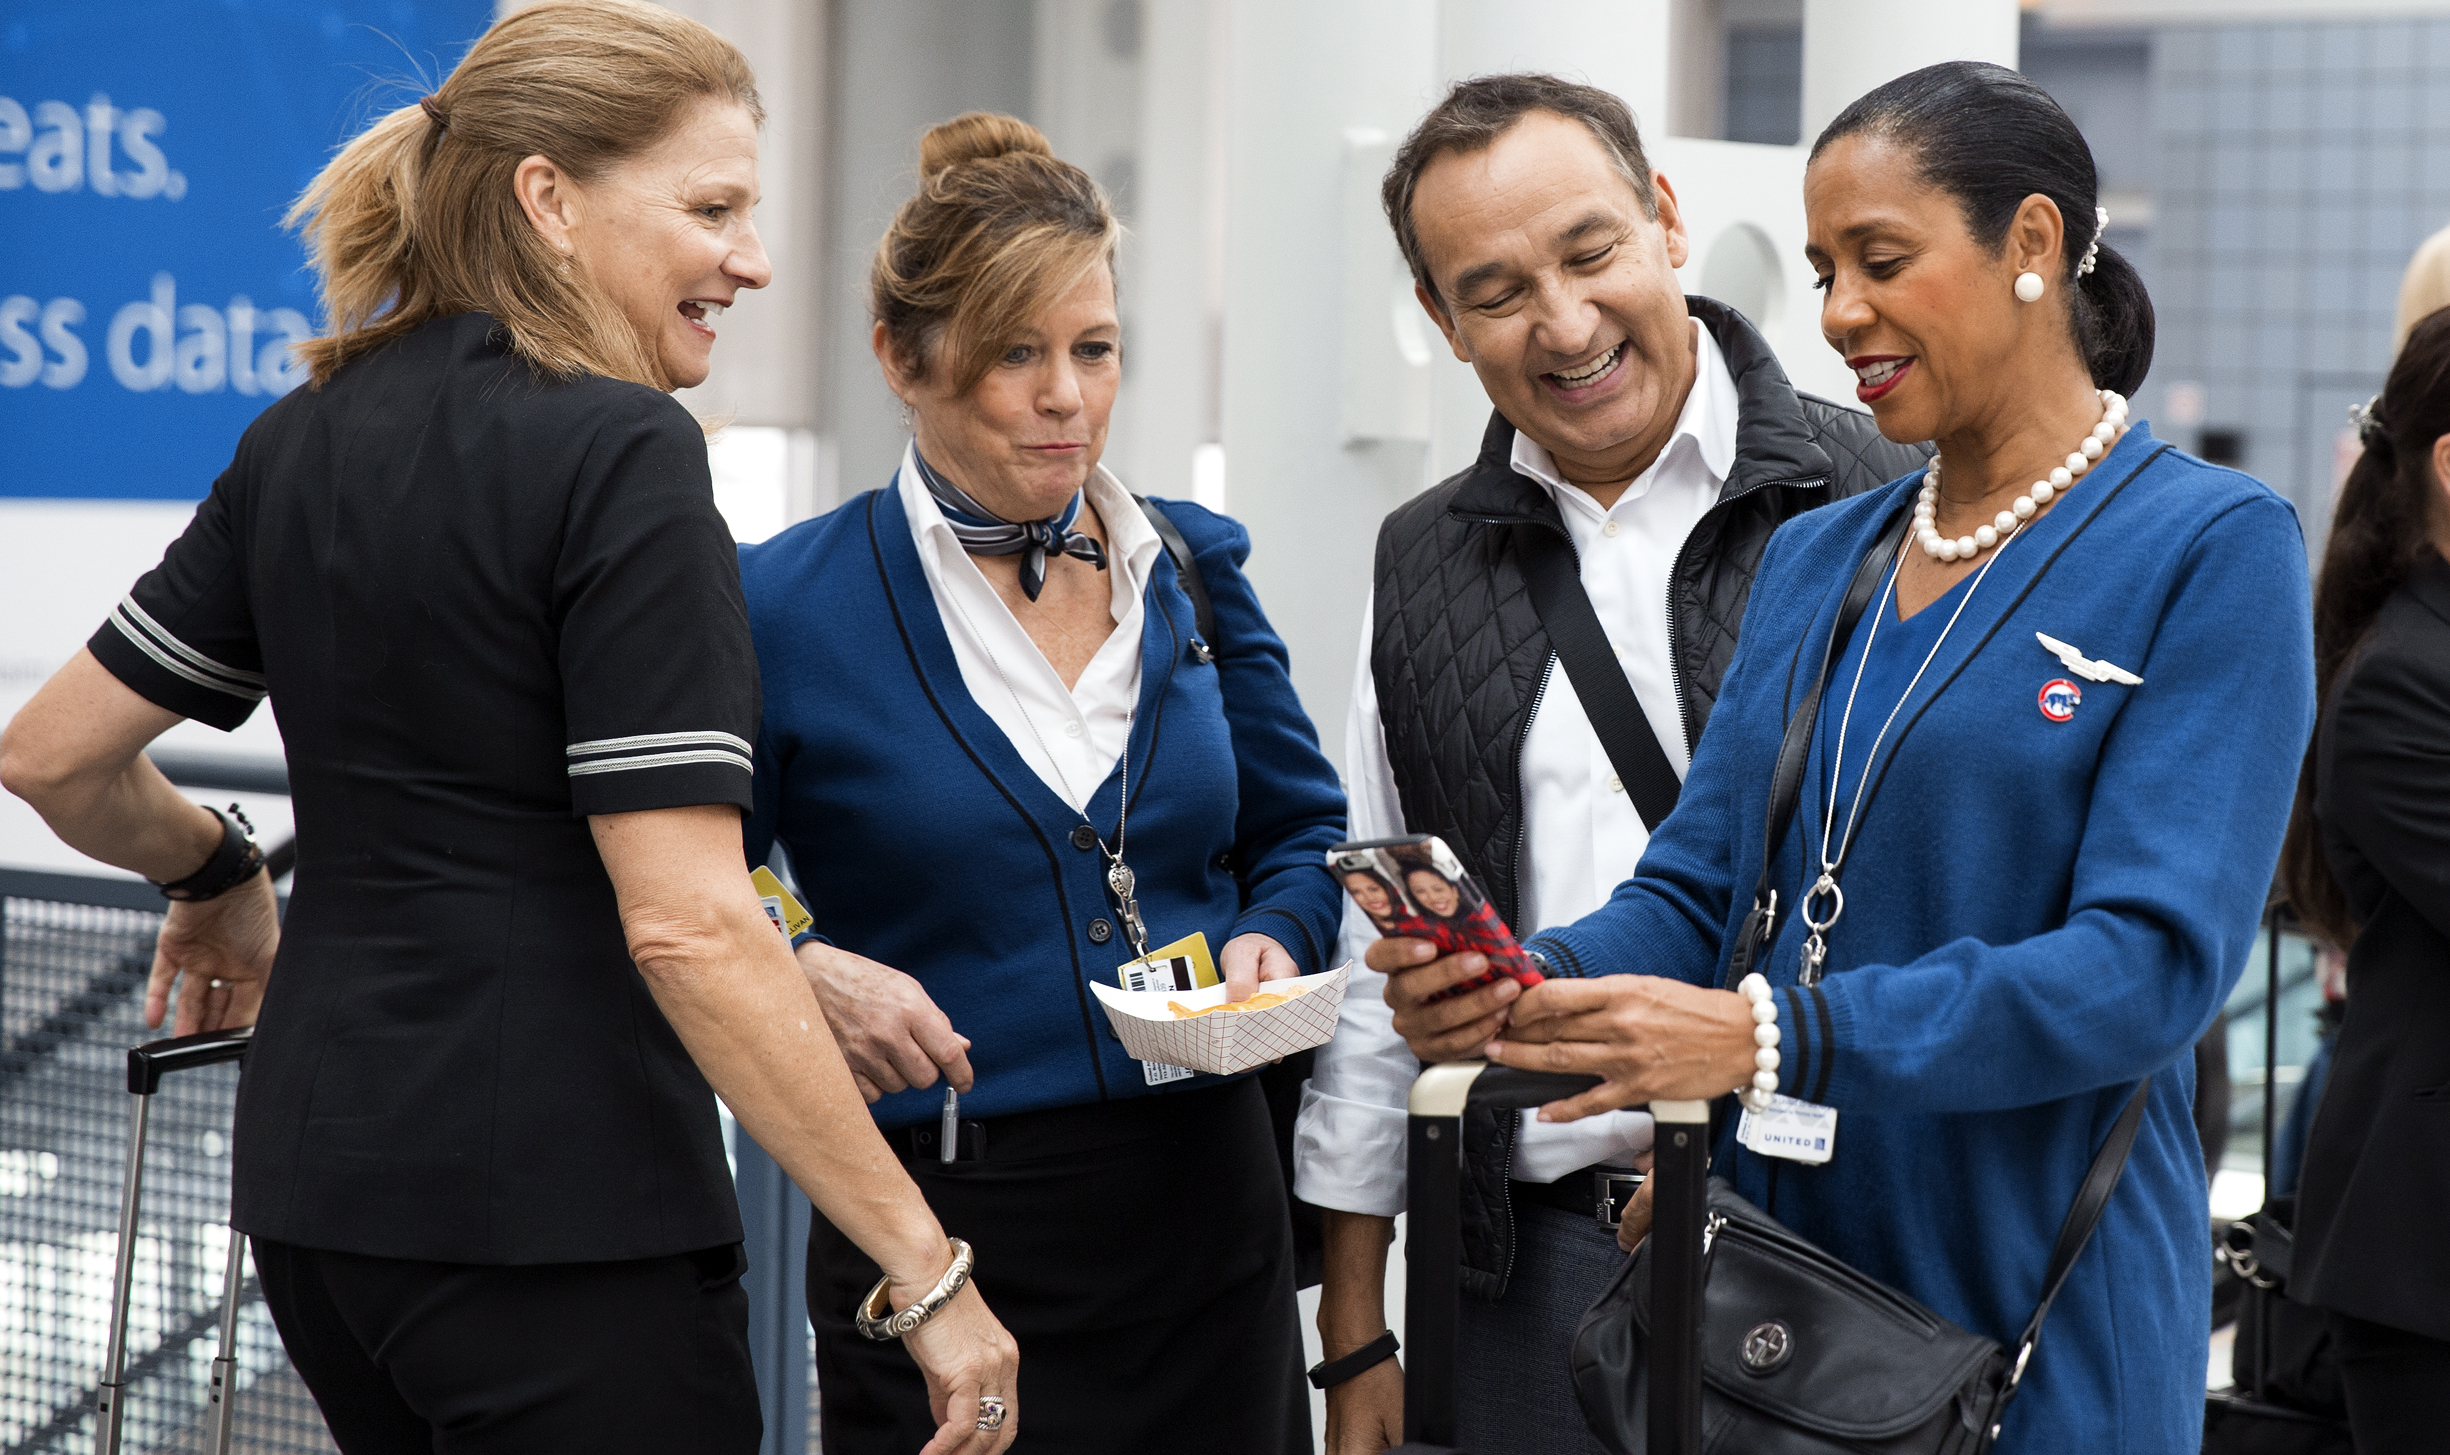 Munoz taking selfies with United employees at O'Hare Airport in Chicago. Earlier this year the CEO moved decisively to settle contract negotiations with the flight attendants' union, leading to better service and happier customers.